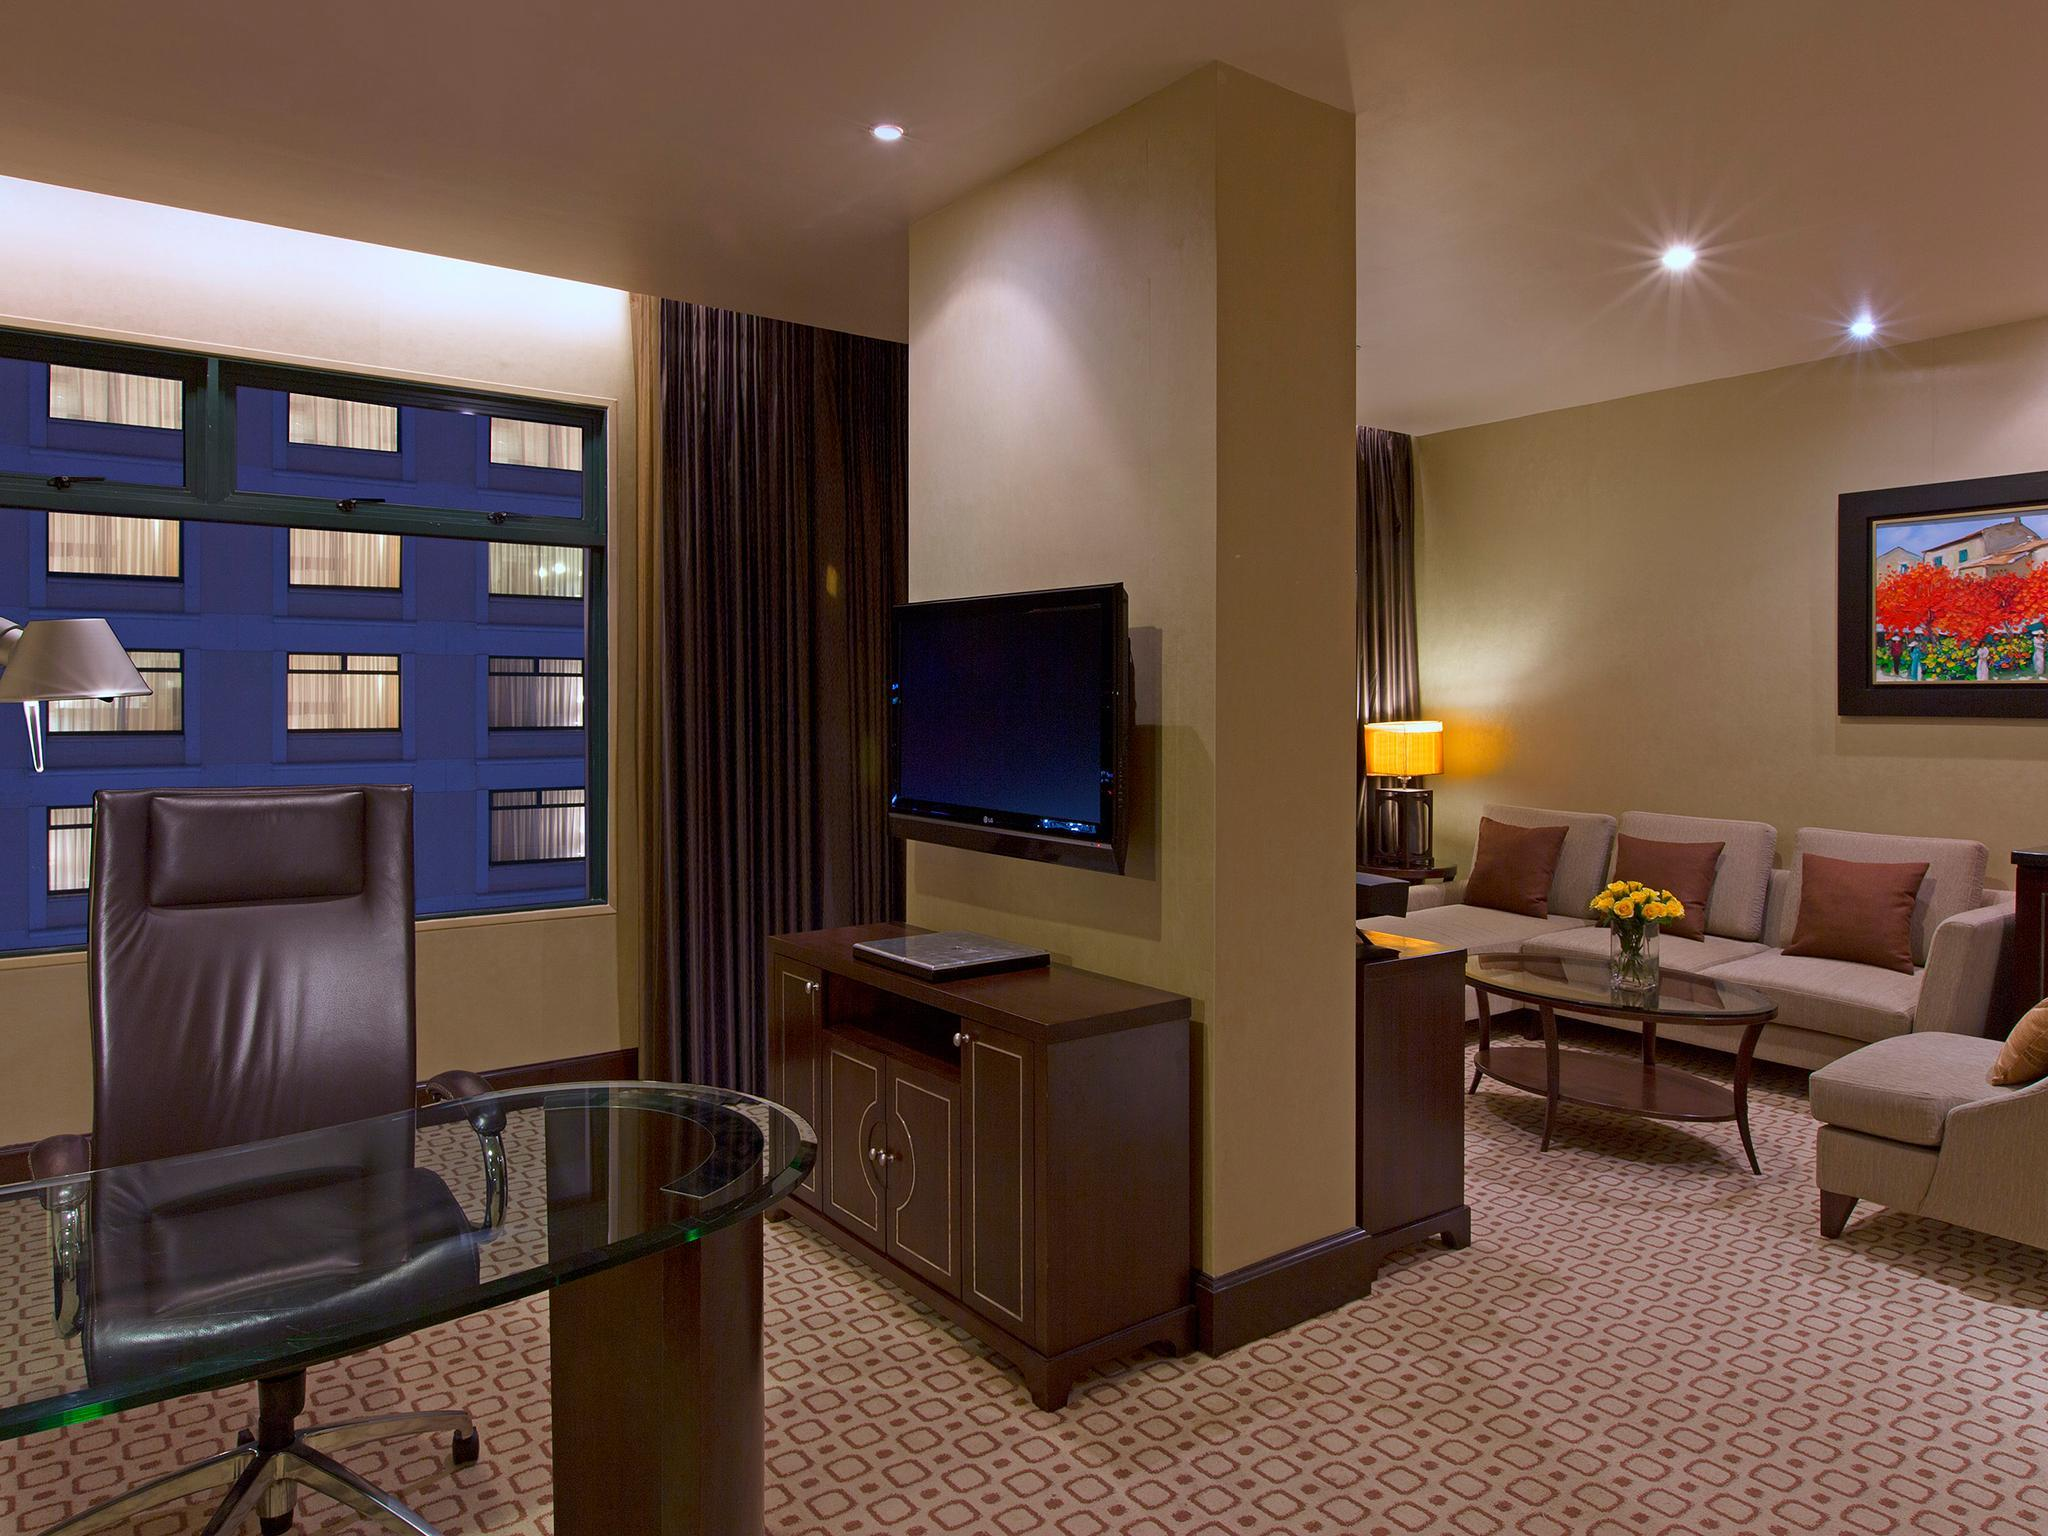 Juniorsvit Grand Tower (Grand Tower Junior Suite)